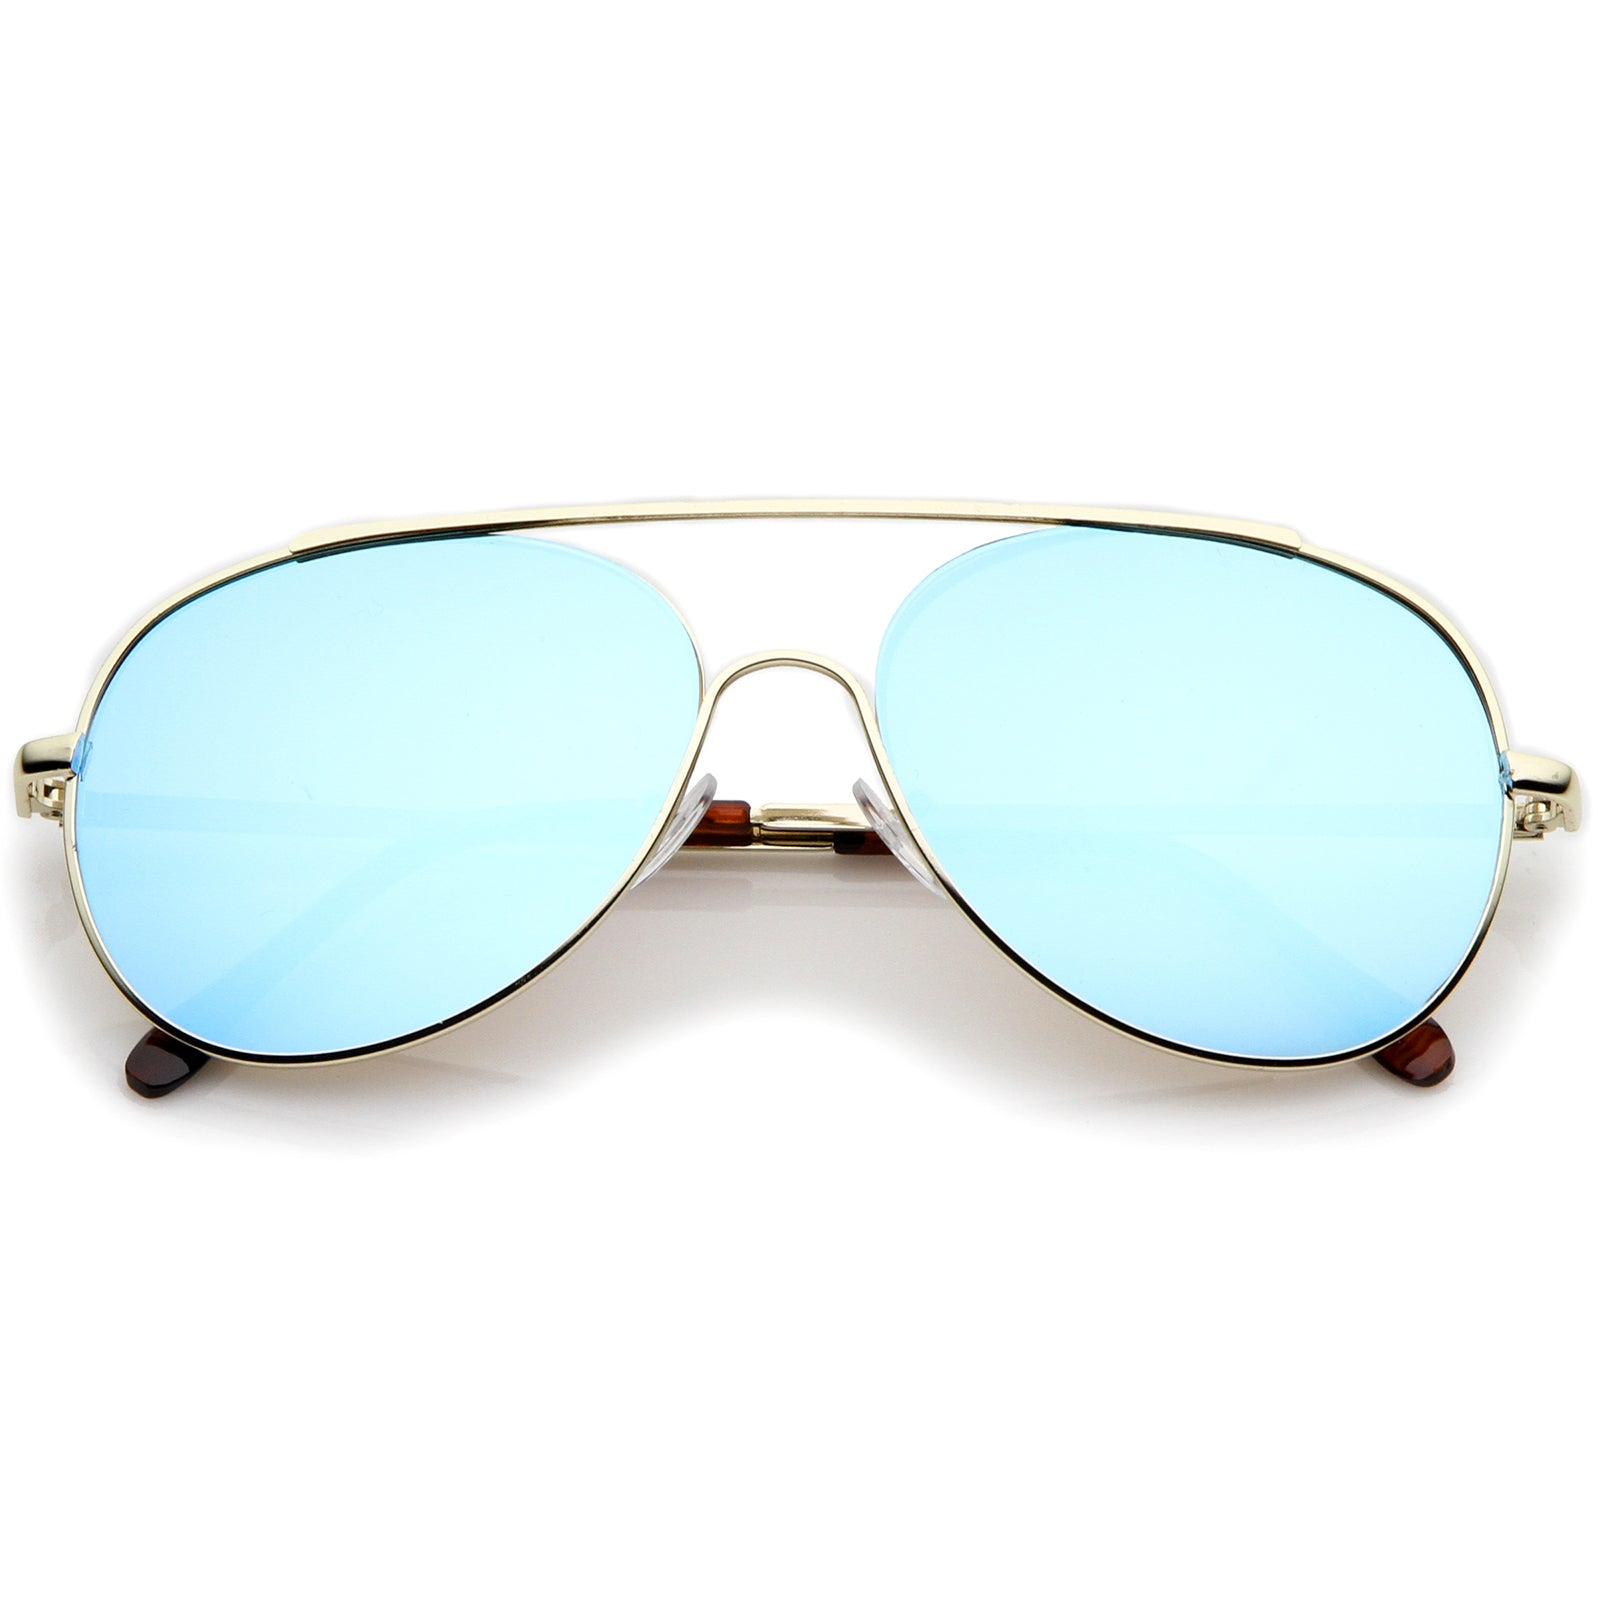 Classic Brow Bar Semi-Rimless Colored Mirror Lens Aviator Sunglasses 57mm - sunglass.la